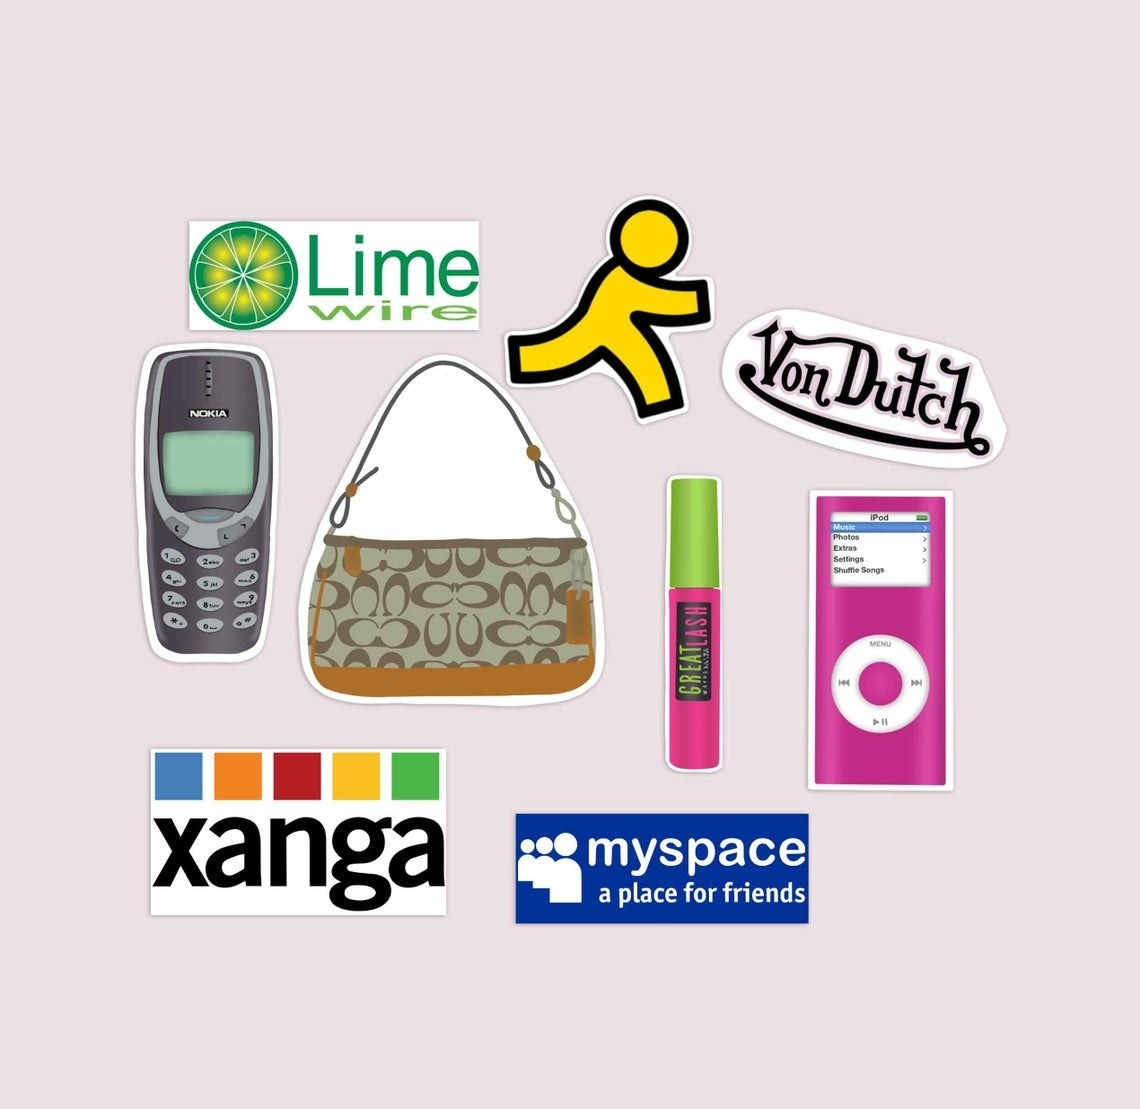 A set of stickers made to look like the logos from Myspace, Xanga, Von Dutch, and Lime Wire, and stickers meant to look like the AOL man, an old iPod, Maybelline mascara, a Coach purse, and a Nokia cellphone.